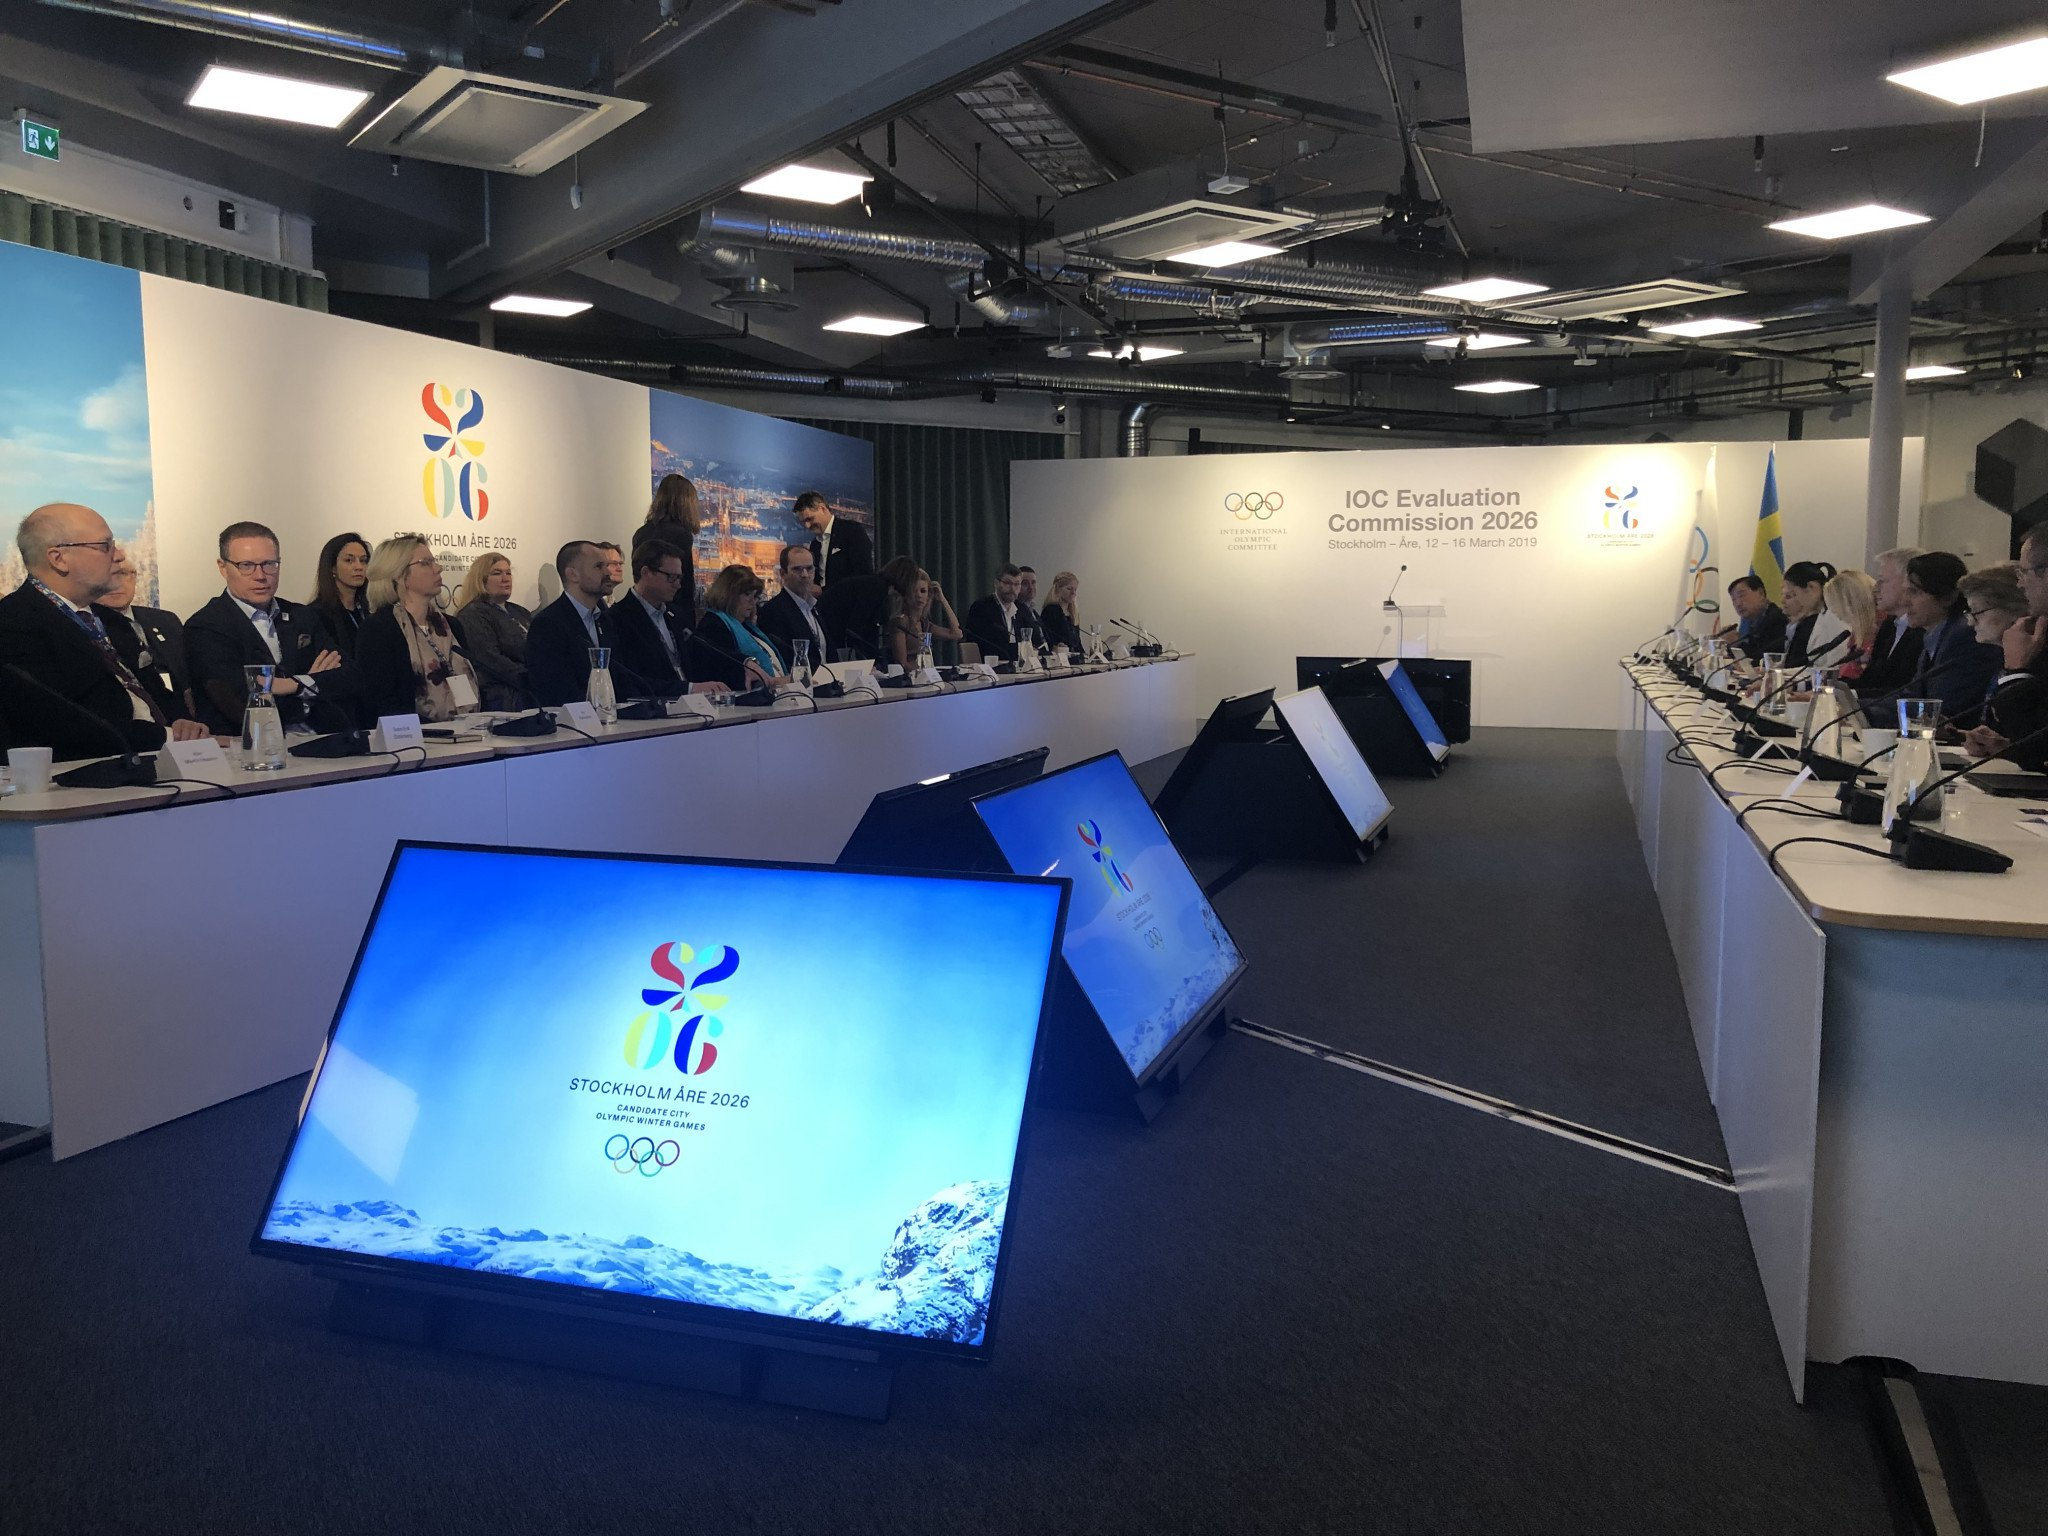 Stockholm+IOC+Coordination+Commission+March+19+2019